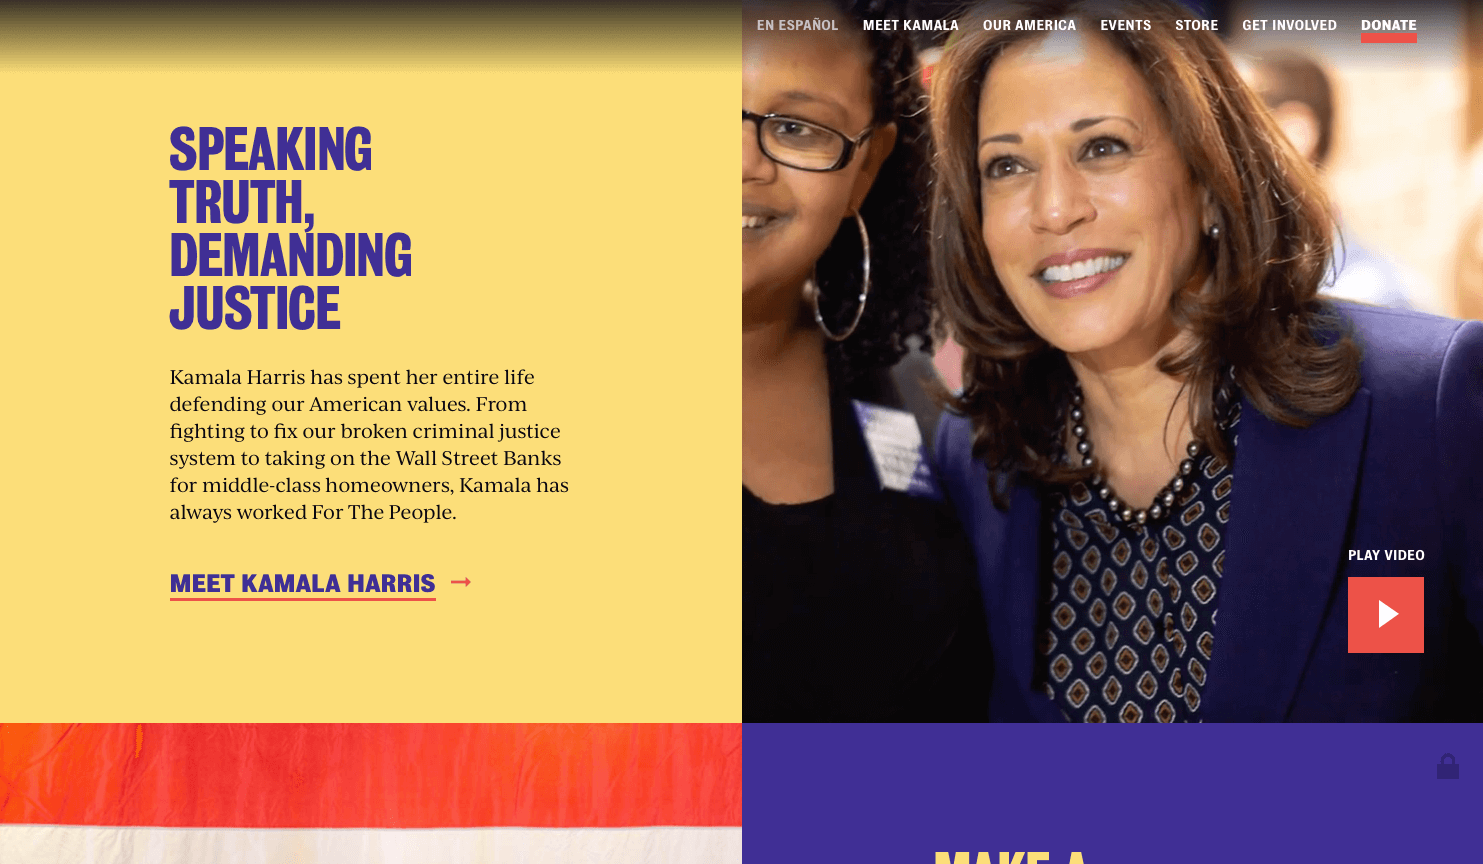 Kamala Harris presidential candidate home page - Screen shot from THAT Branding Company Newcastle Upon Tyne.png